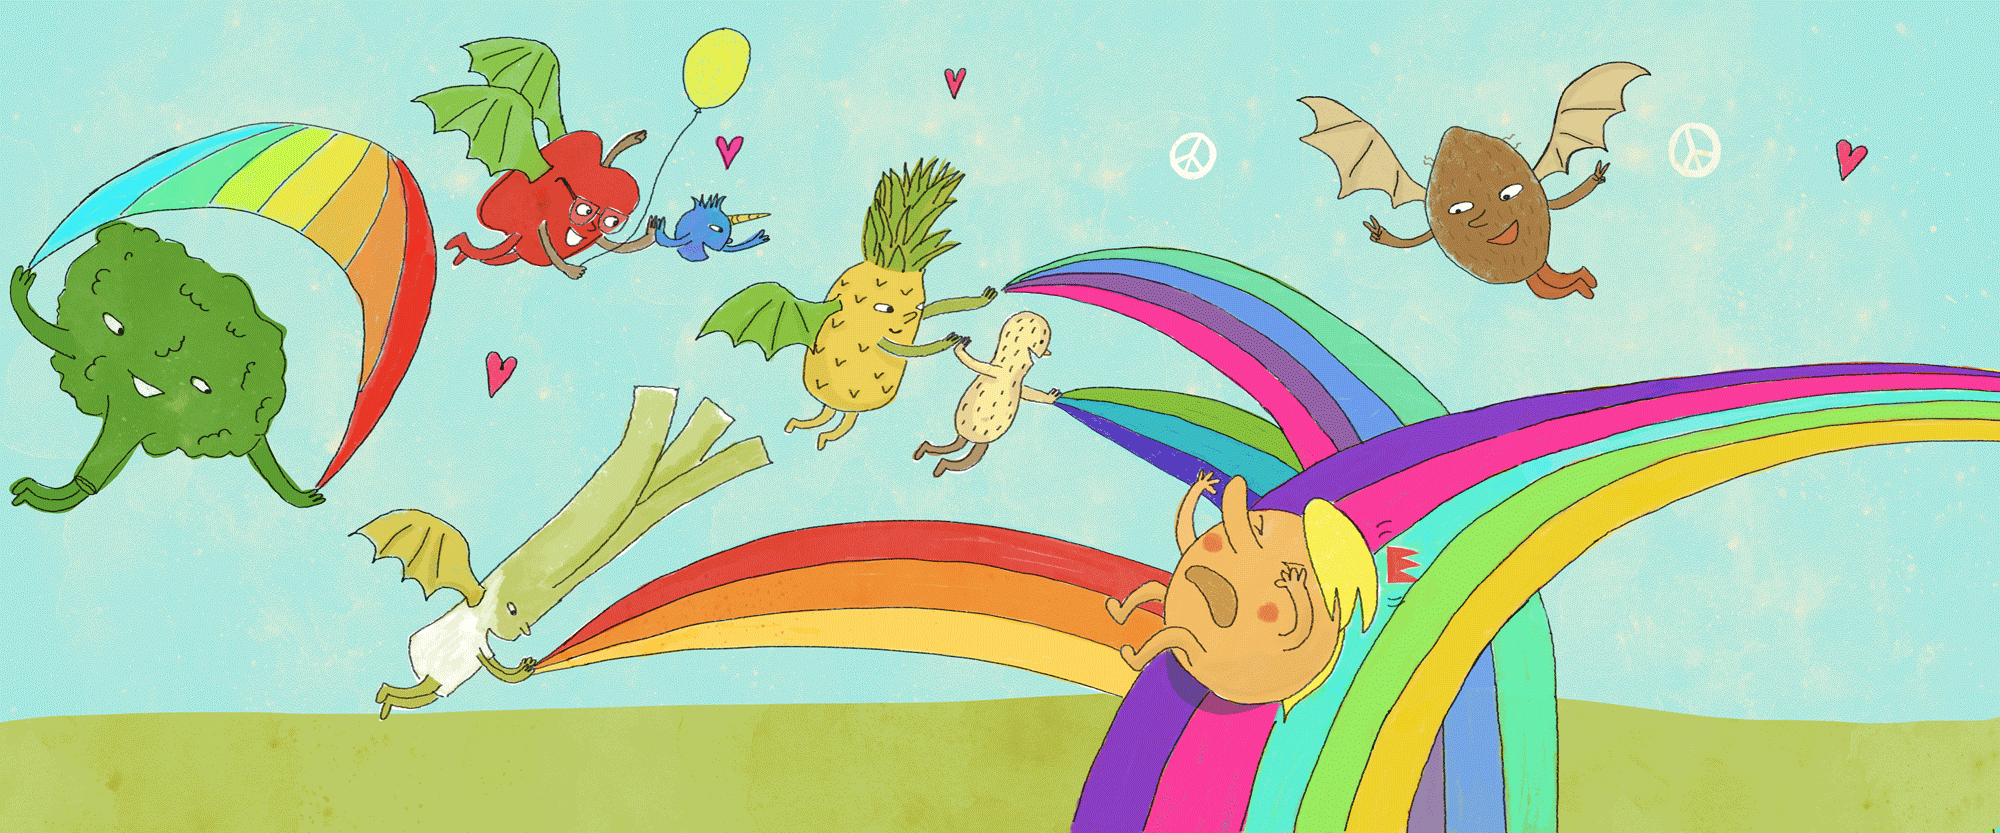 ... AND THEN THE GOOD AND HONEST FRUIT AND VEGGIES ZAPPED THE MEAN GUYS WITH RAINBOWS UNTIL THEY HAD THEIR POWER BACK!! (spread from upcoming collaboration with writer Carol Steuri for a Kickstarter project on bullying.